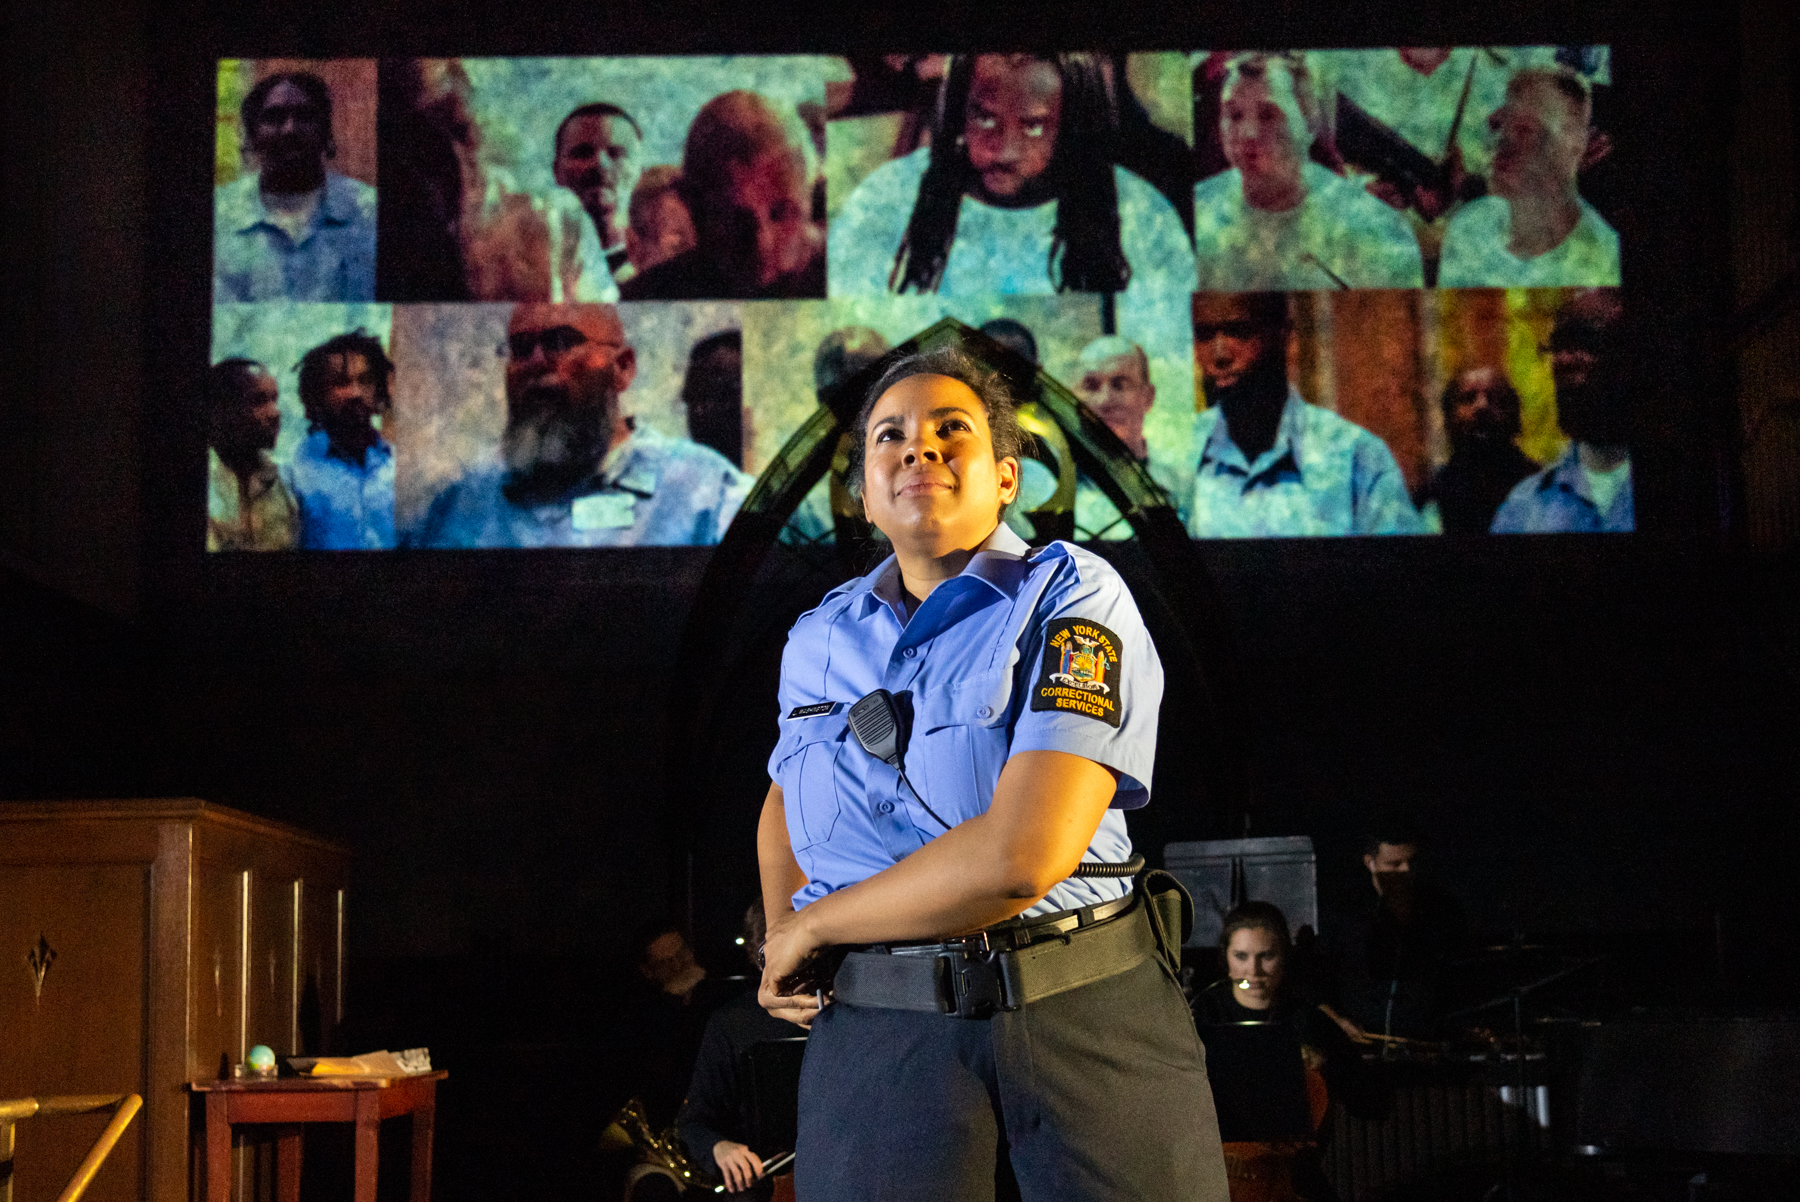 FIDELIO - Remounted in a Semi-Staged Concert VersionPresented by Rutgers Presbyterian ChurchMay 3–13, 2018Rutgers Presbyterian ChurchMusic by Ludwig van BeethovenOriginal libretto by Joseph Sonnleithner & Georg Friedrich SonnleithnerAdapted & Directed by Ethan HeardArranged & Music Directed by Daniel SchlosbergNew English Dialogue Co-Written by Marcus Scott & Ethan Heard